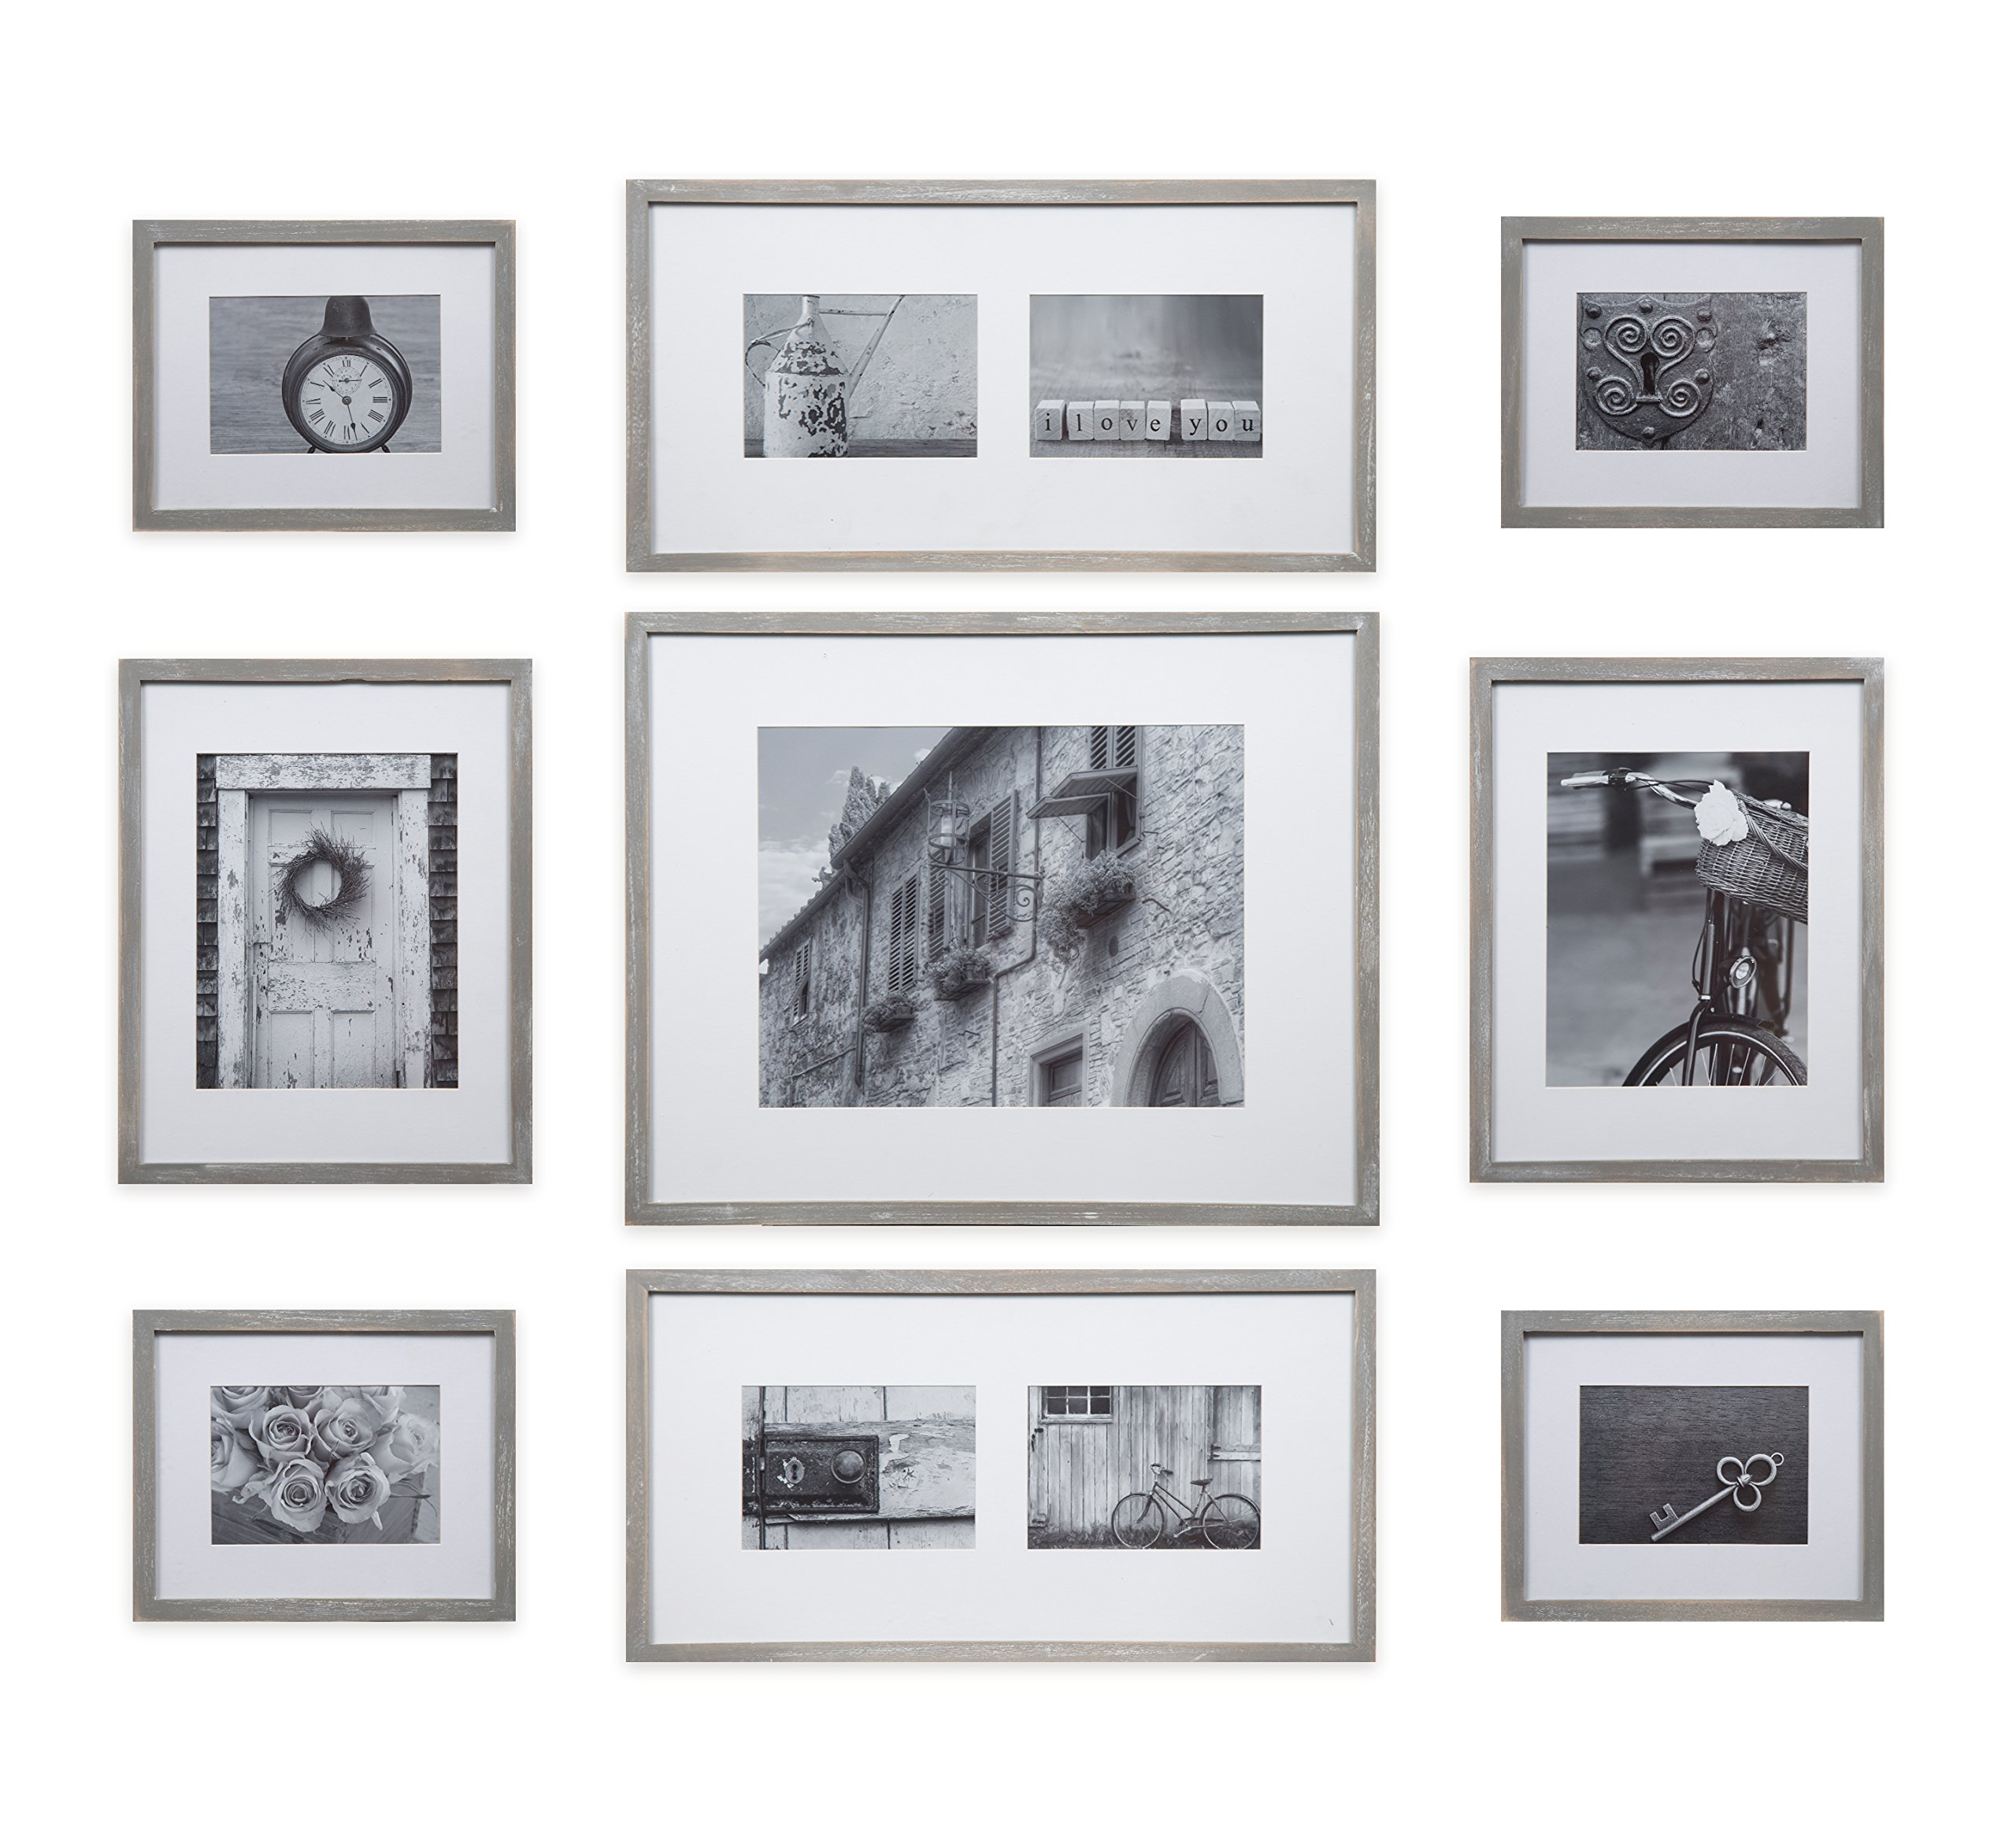 Gallery Perfect Decorative Art Prints & Hanging Template 9 Piece Greywash Wood Photo Frame Wall Gallery Kit, Grey by Gallery Perfect